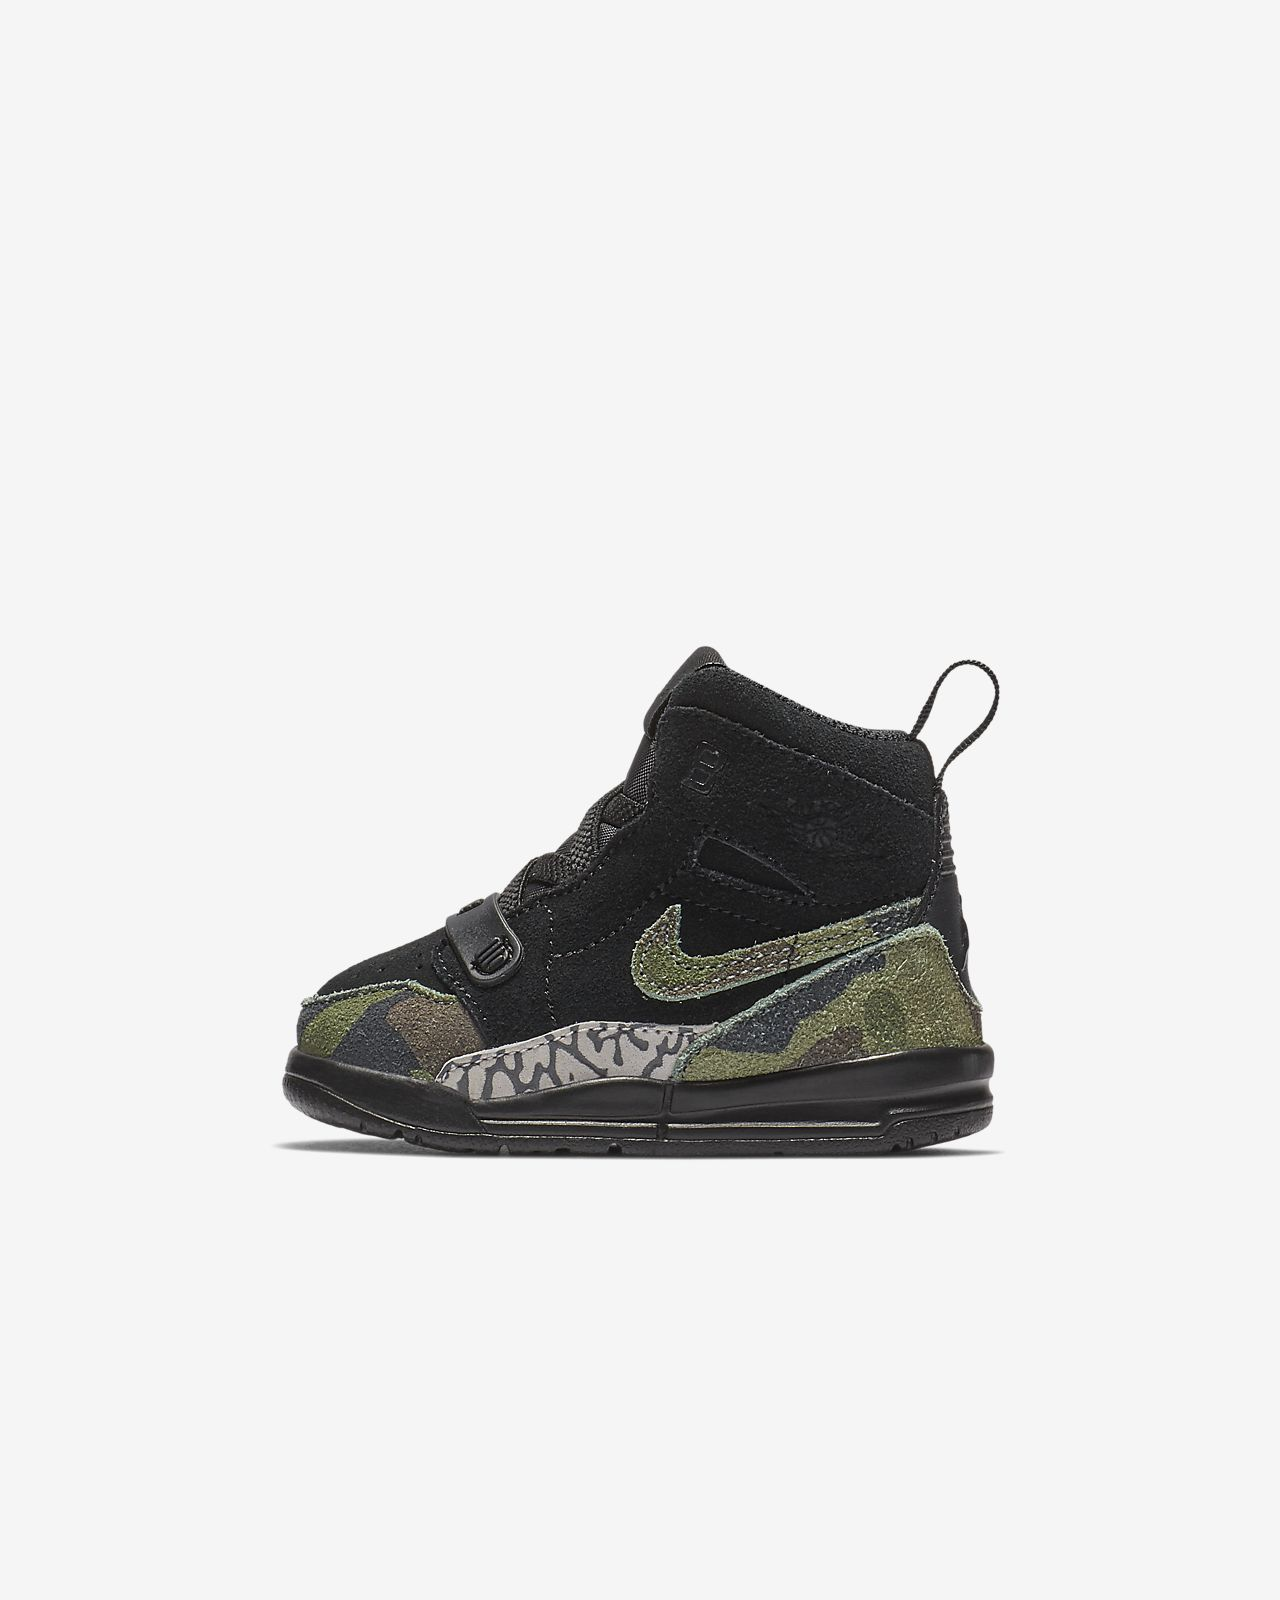 Air Jordan Legacy 312 Infant/Toddler Shoe